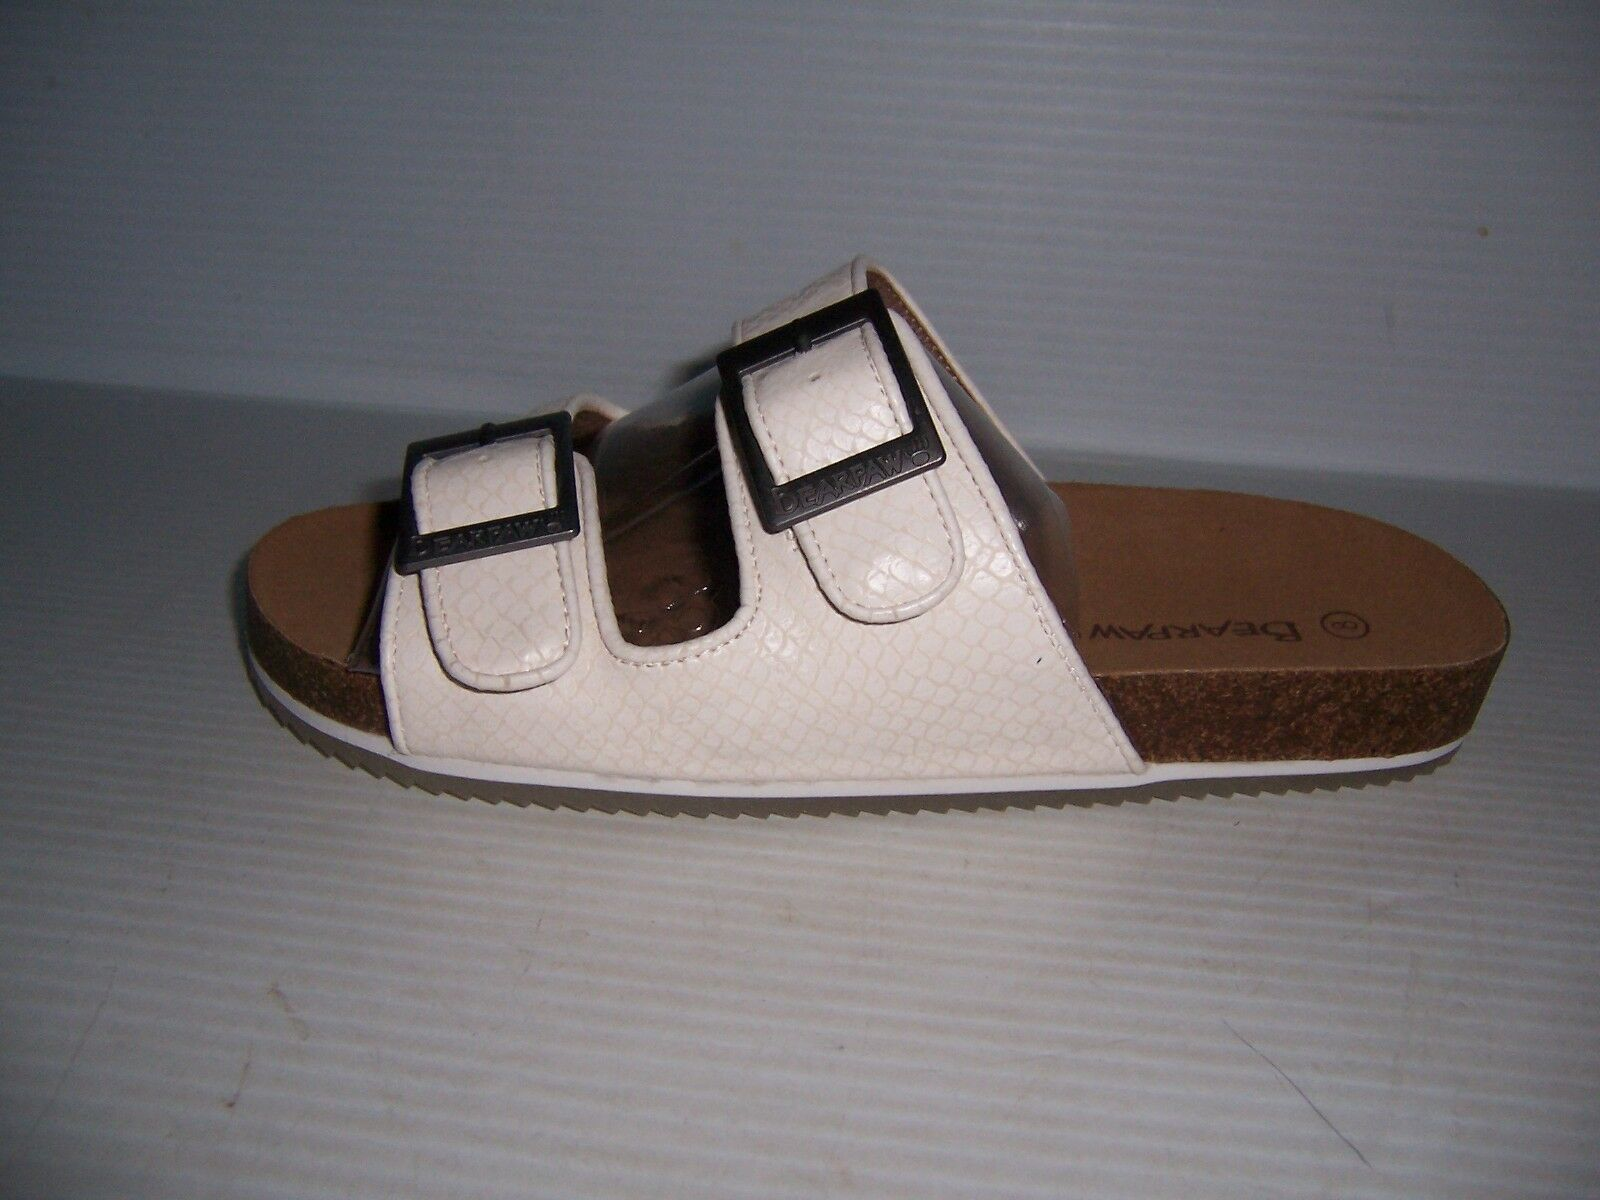 Bearpaw Brooklyn White Snake 8 Women's Microsuede Slides Sandals Size 8 Snake NEW cac3fc